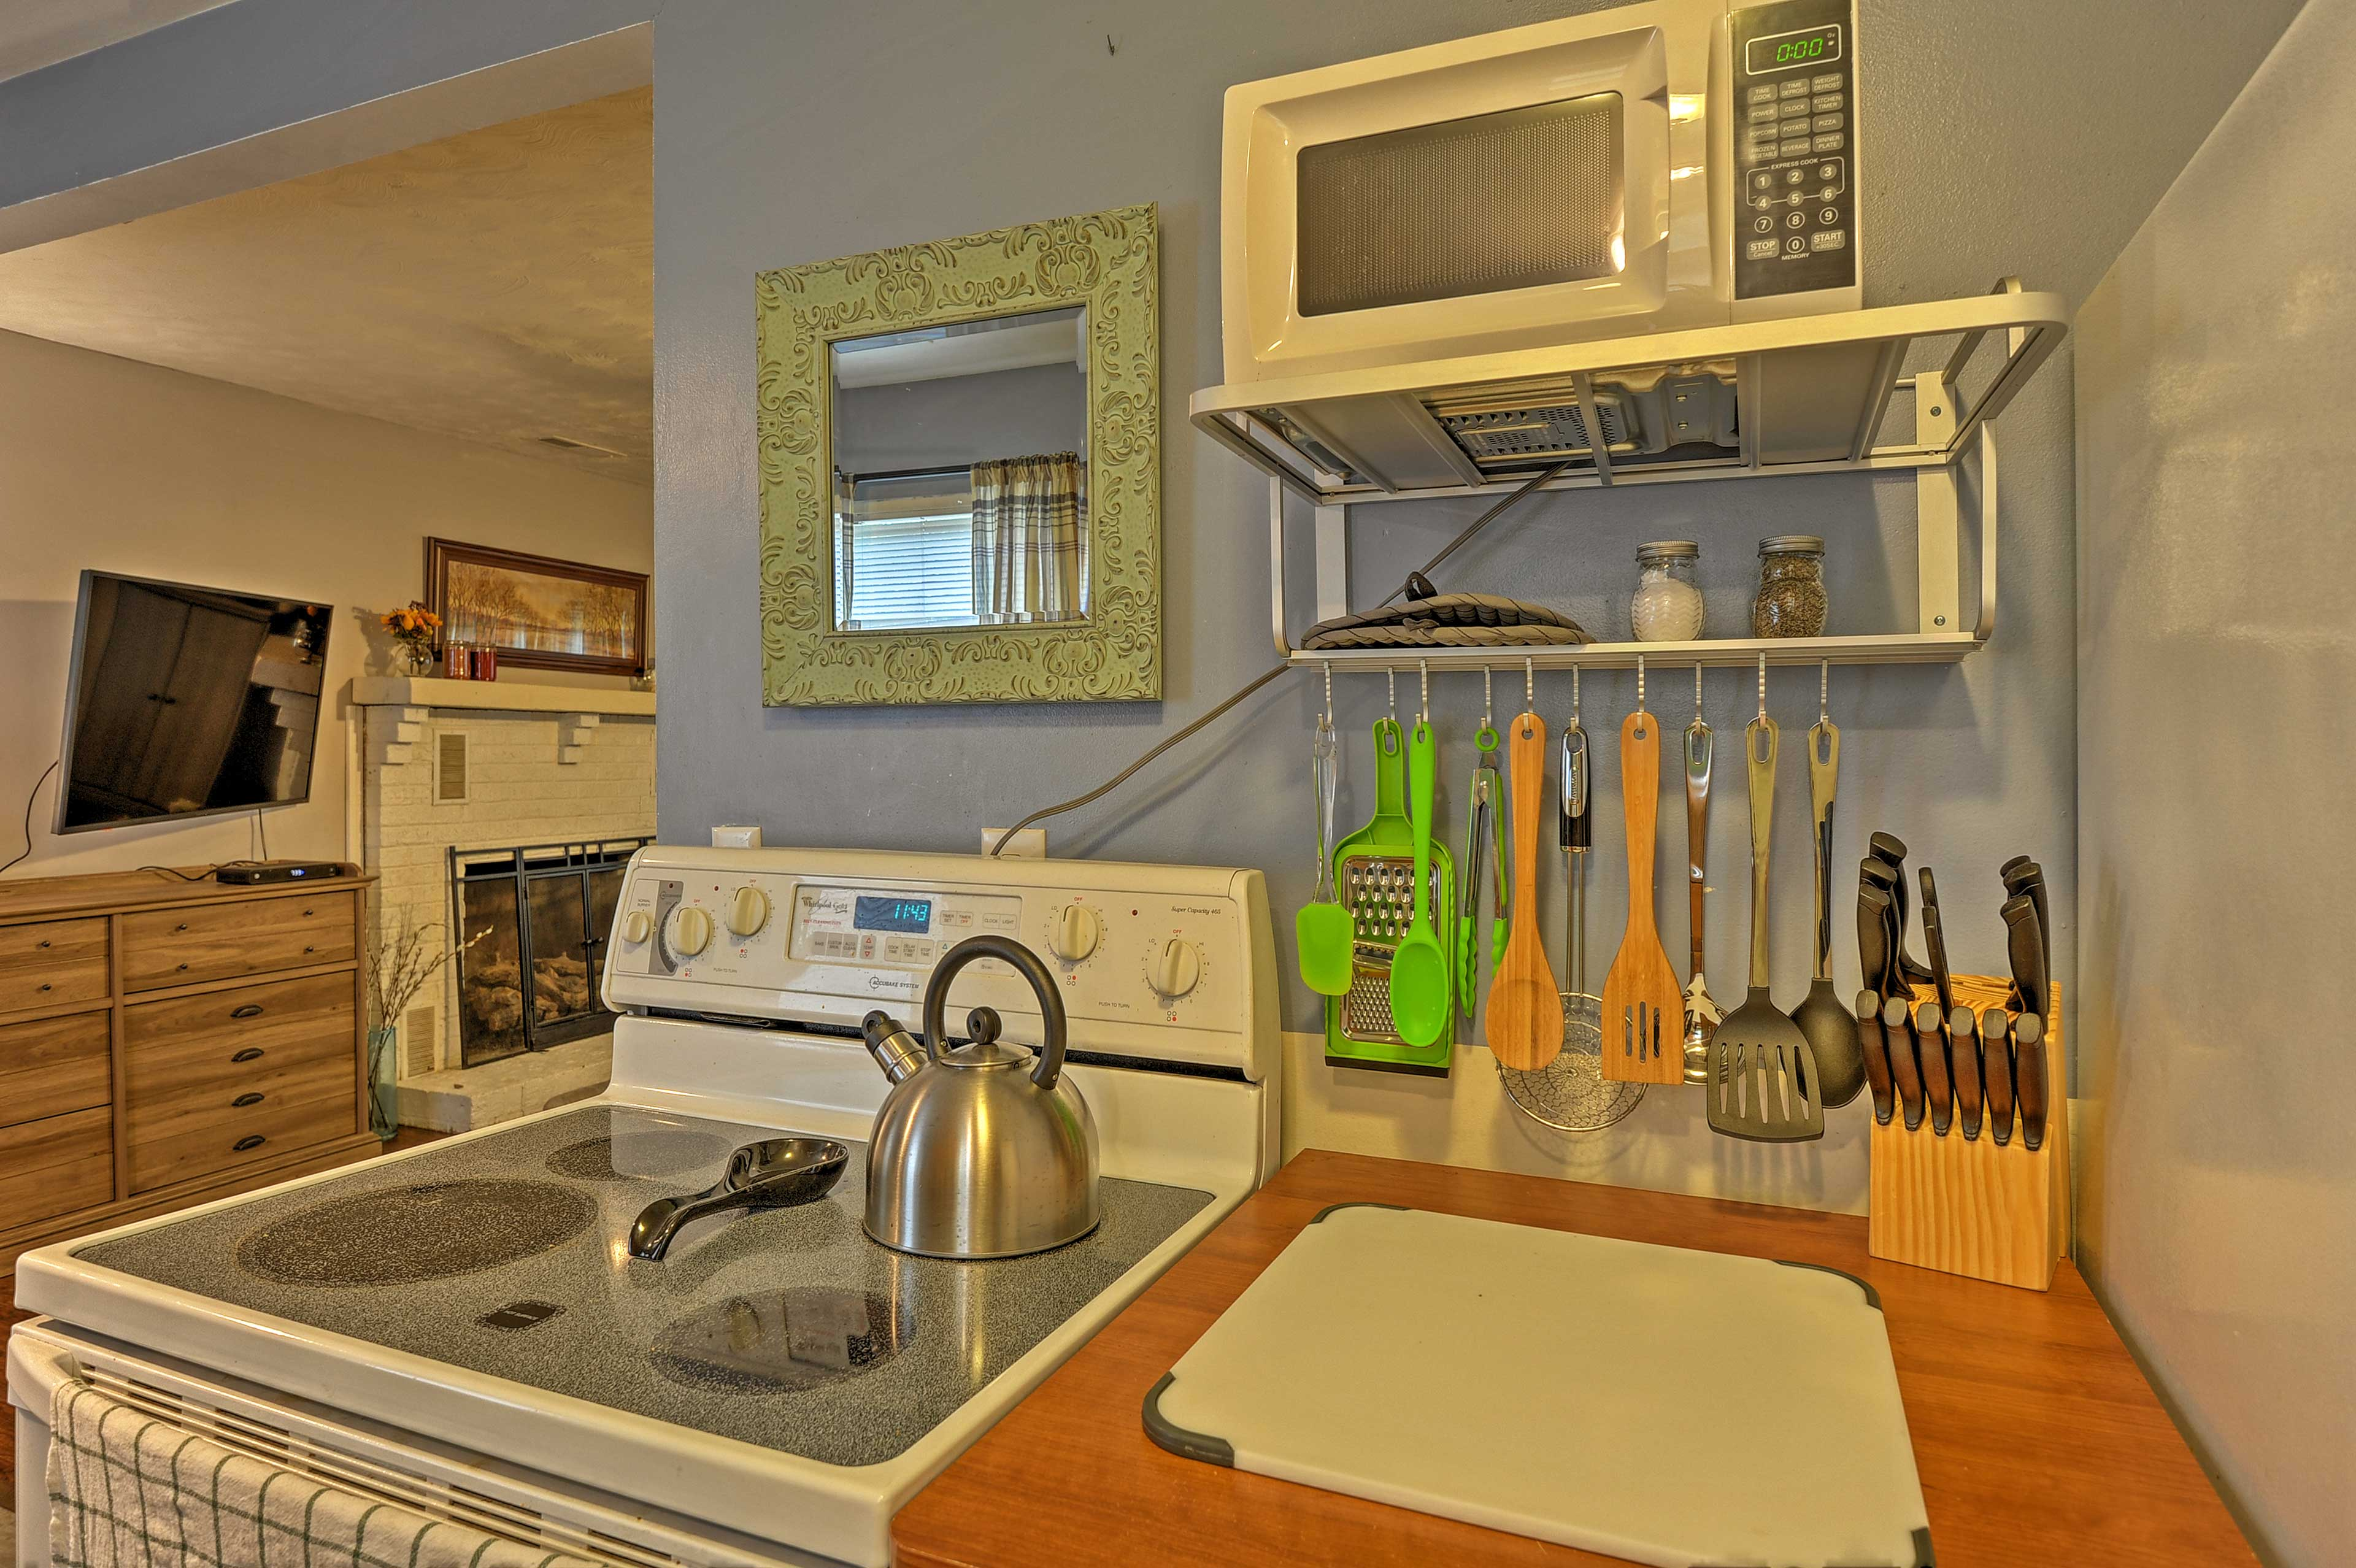 Make all of your meals in the fully equipped kitchen!